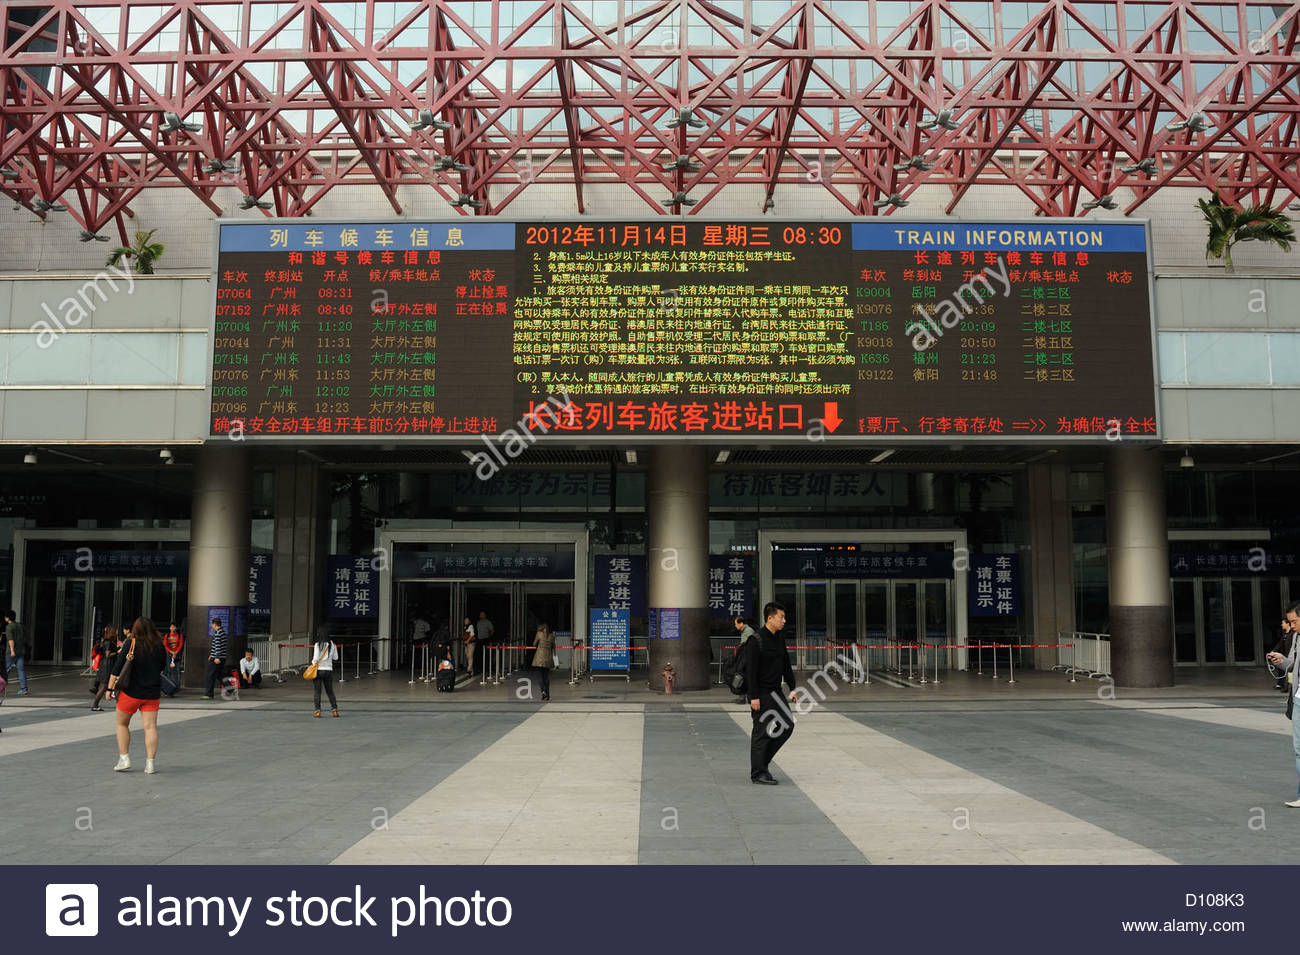 Departures board stock photos departures board stock - China southern airlines london office ...